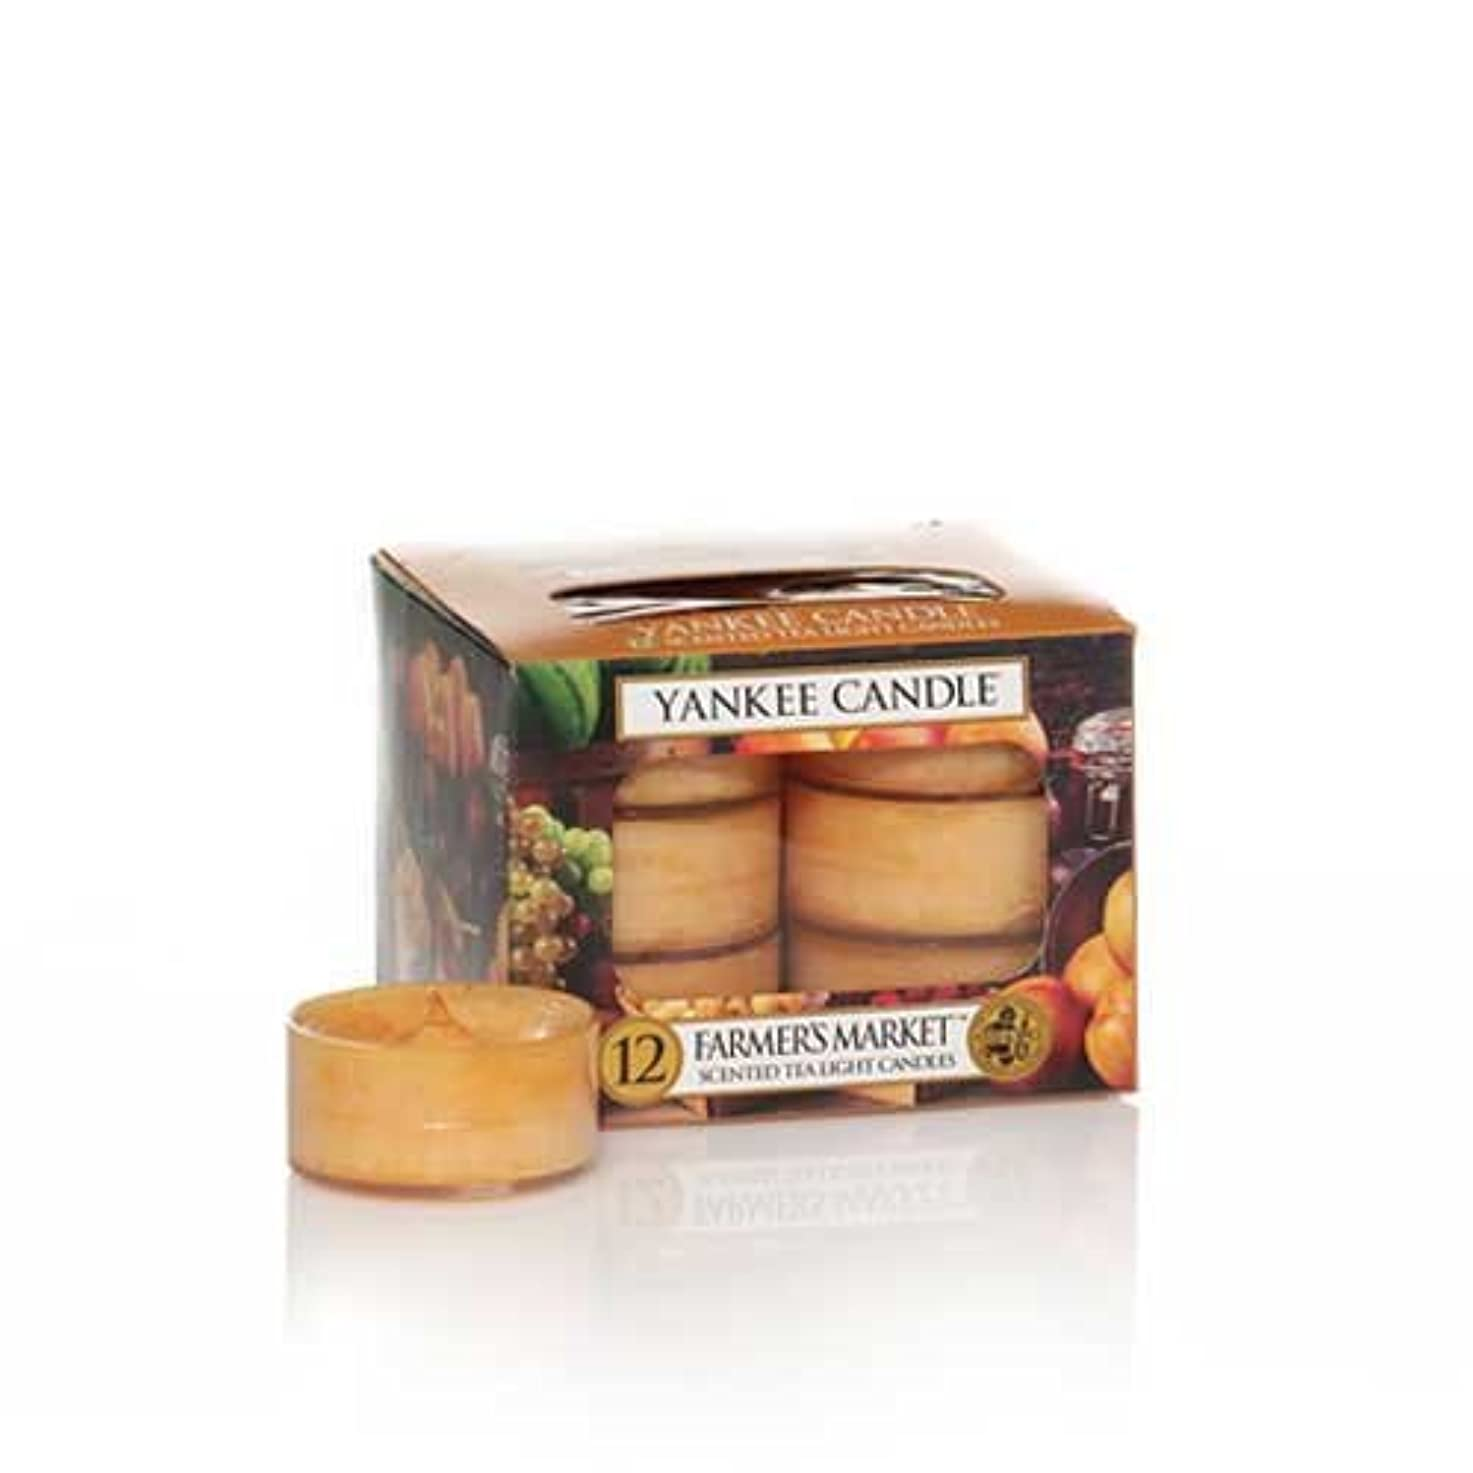 惑星防腐剤サワーYankee Candle Farmer 's Market, Food & Spice香り Tea Light Candles オレンジ 1163587-YC